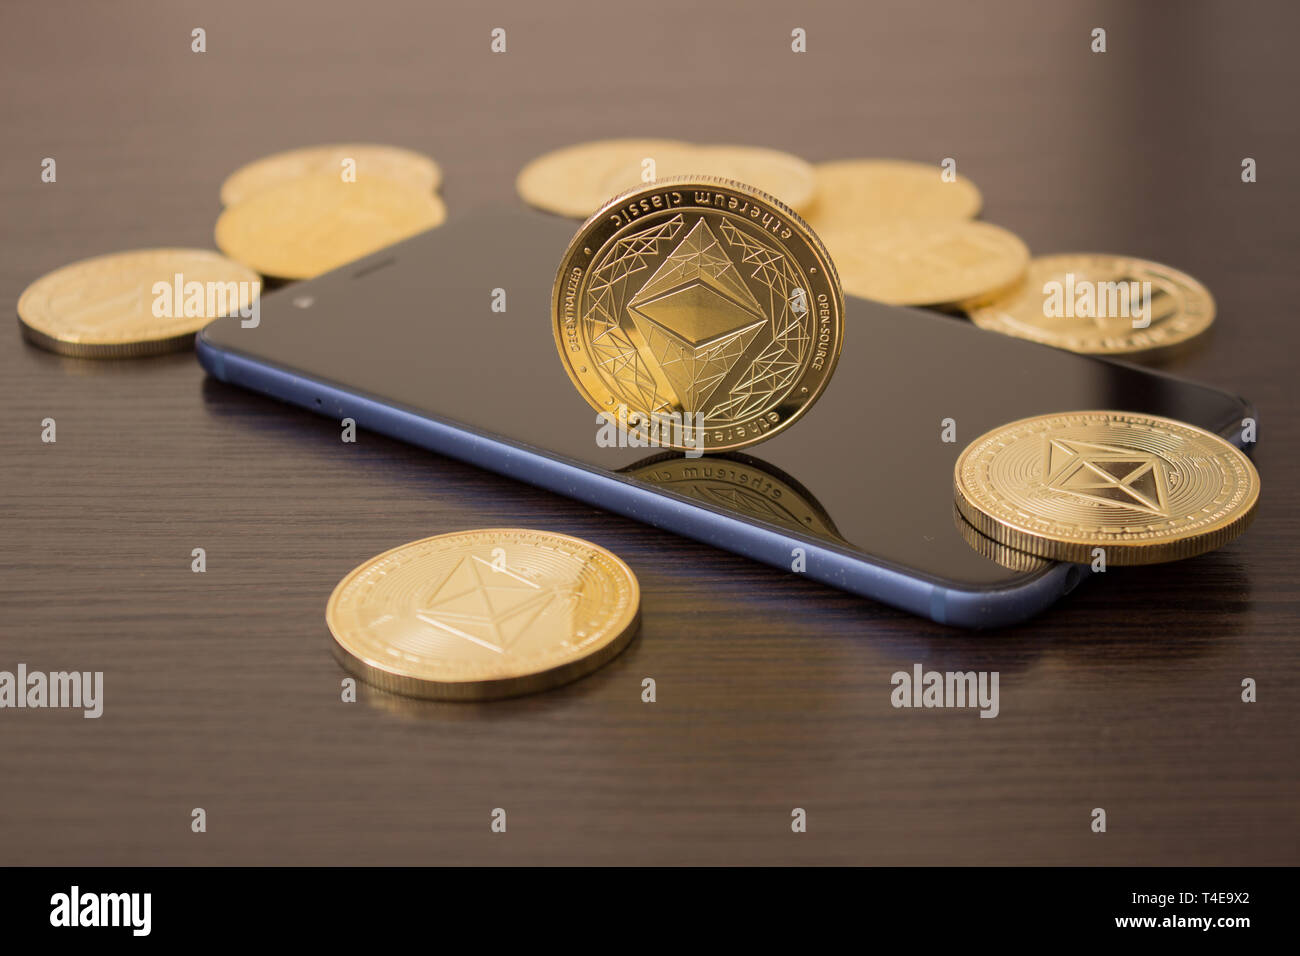 Golden Etherium coin close up on smartphone - business concept of crypto currency. - Stock Image